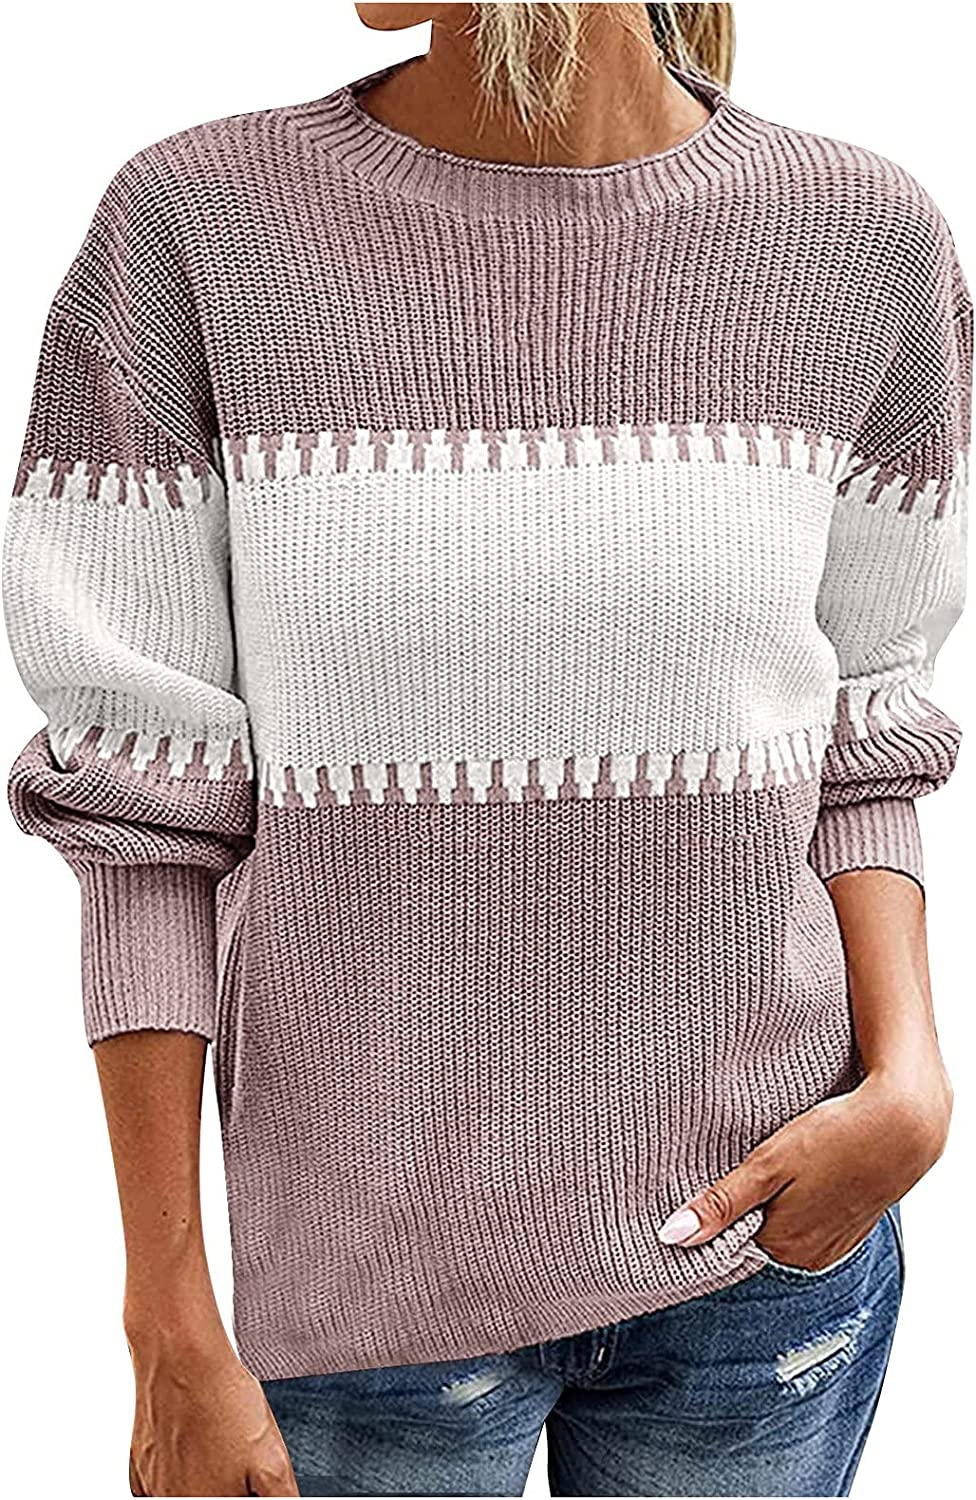 Women's Casual Knitted Stitched Contrast Neck S 25% OFF High Sleeve Super sale period limited Long